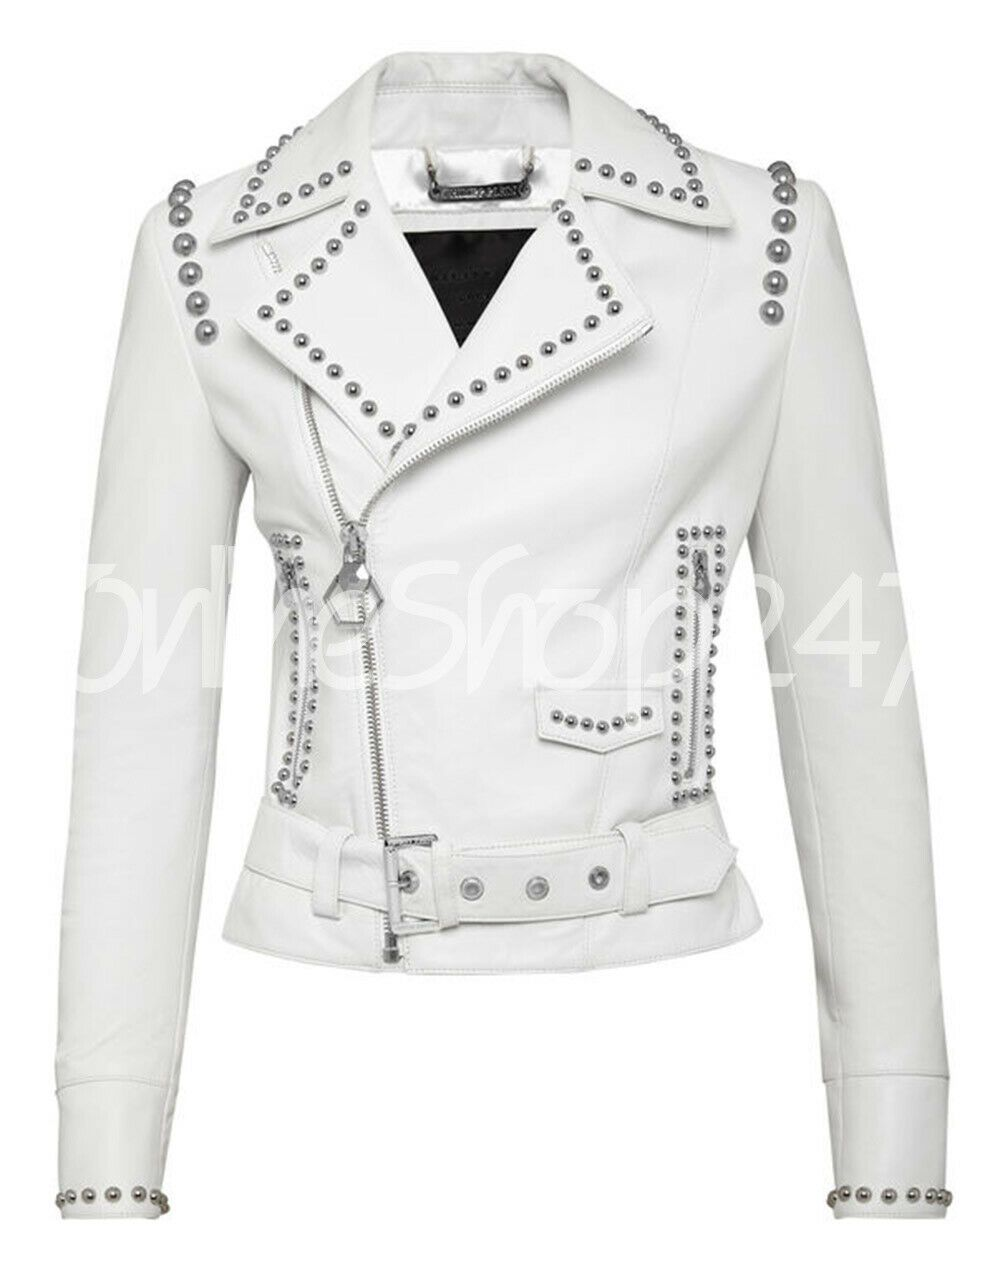 8815cdc92 Details about New Women White Full Silver Metal Studded Brando Style ...